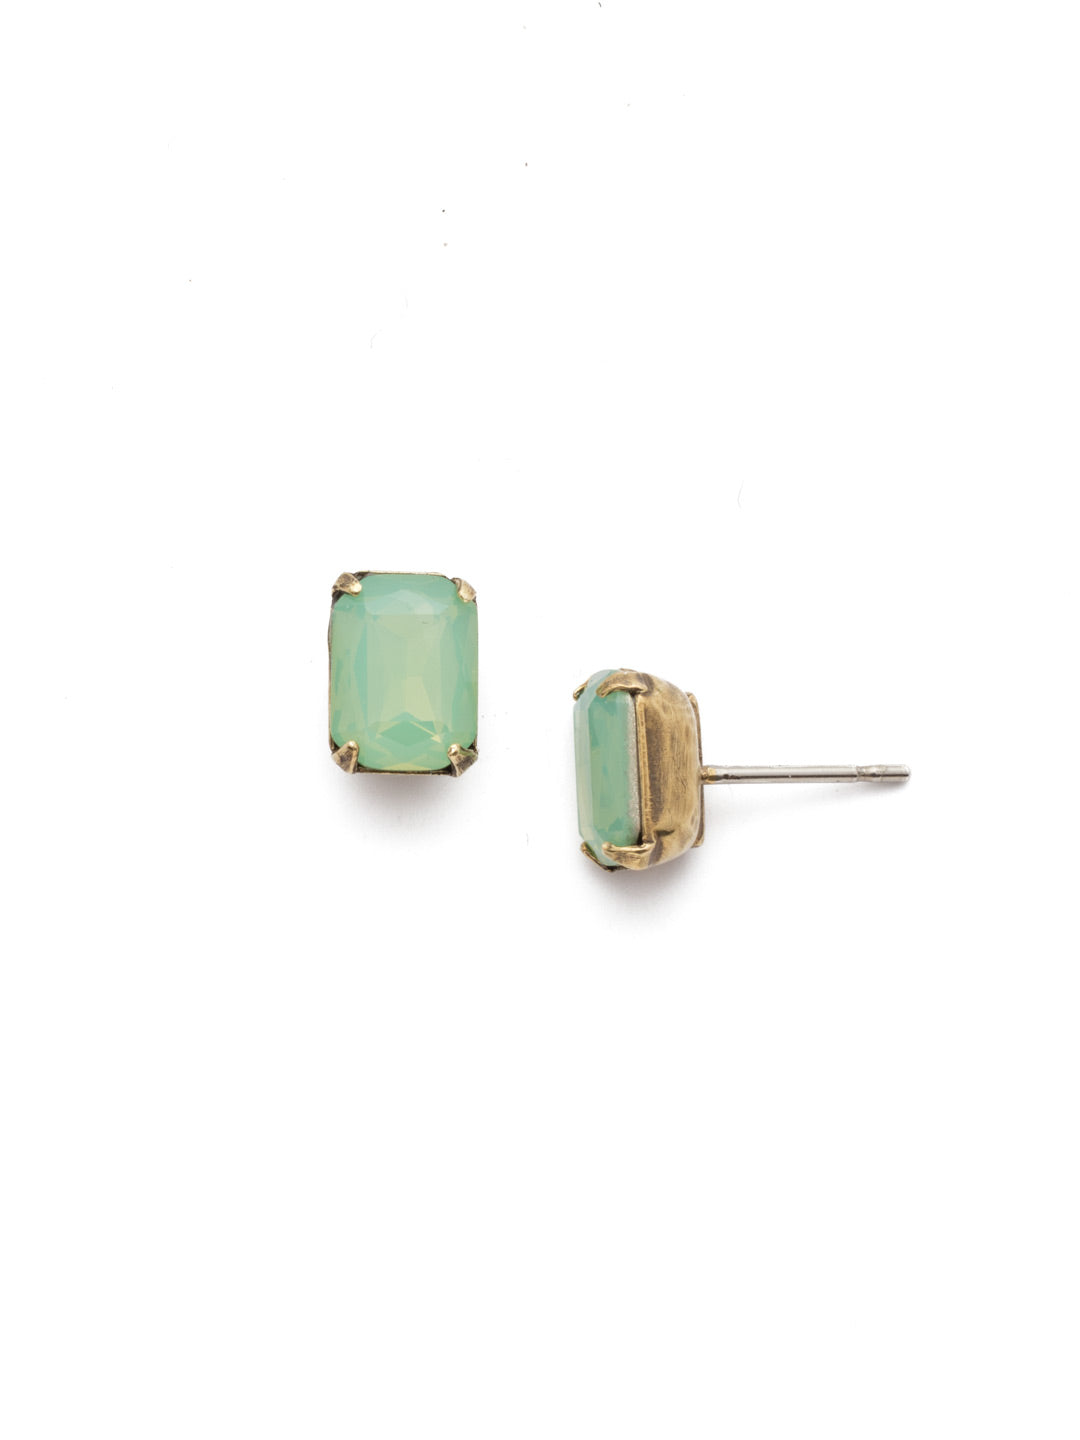 Mini Emerald Cut Stud Earring - Sorrelli Essentials - EBY42AGPAC